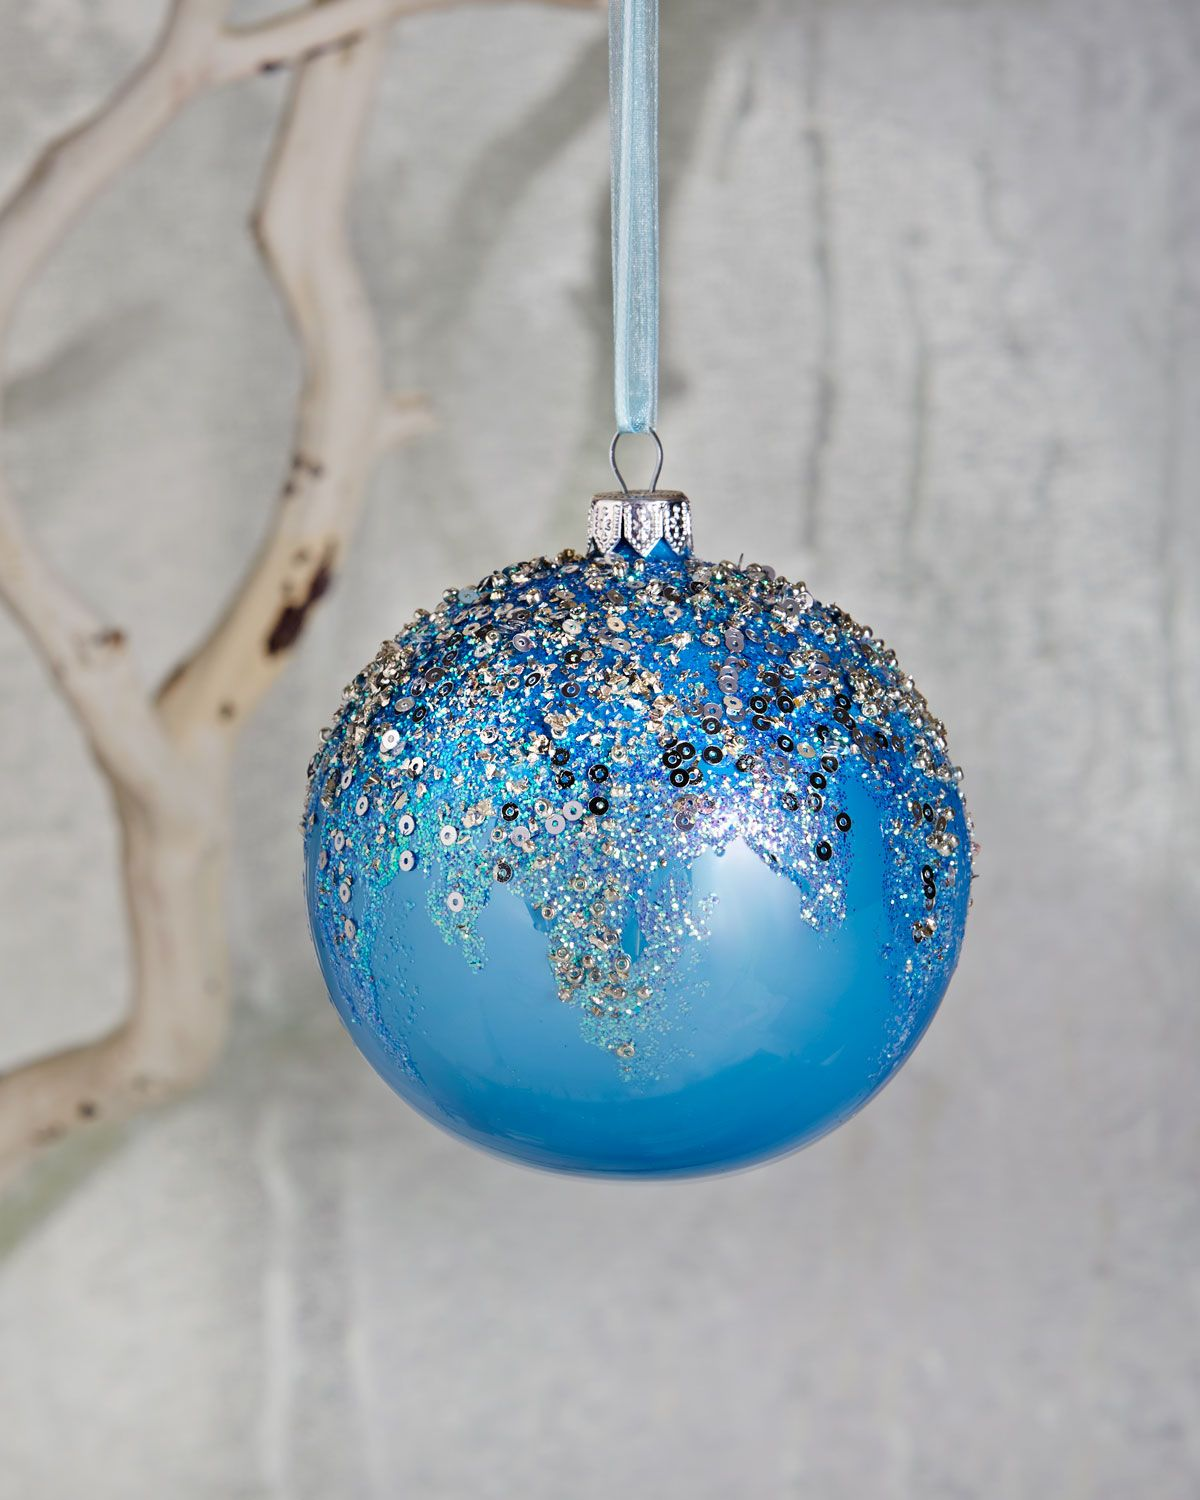 Silver-Embellished Blue Opalescet Ball Christmas Ornament ...